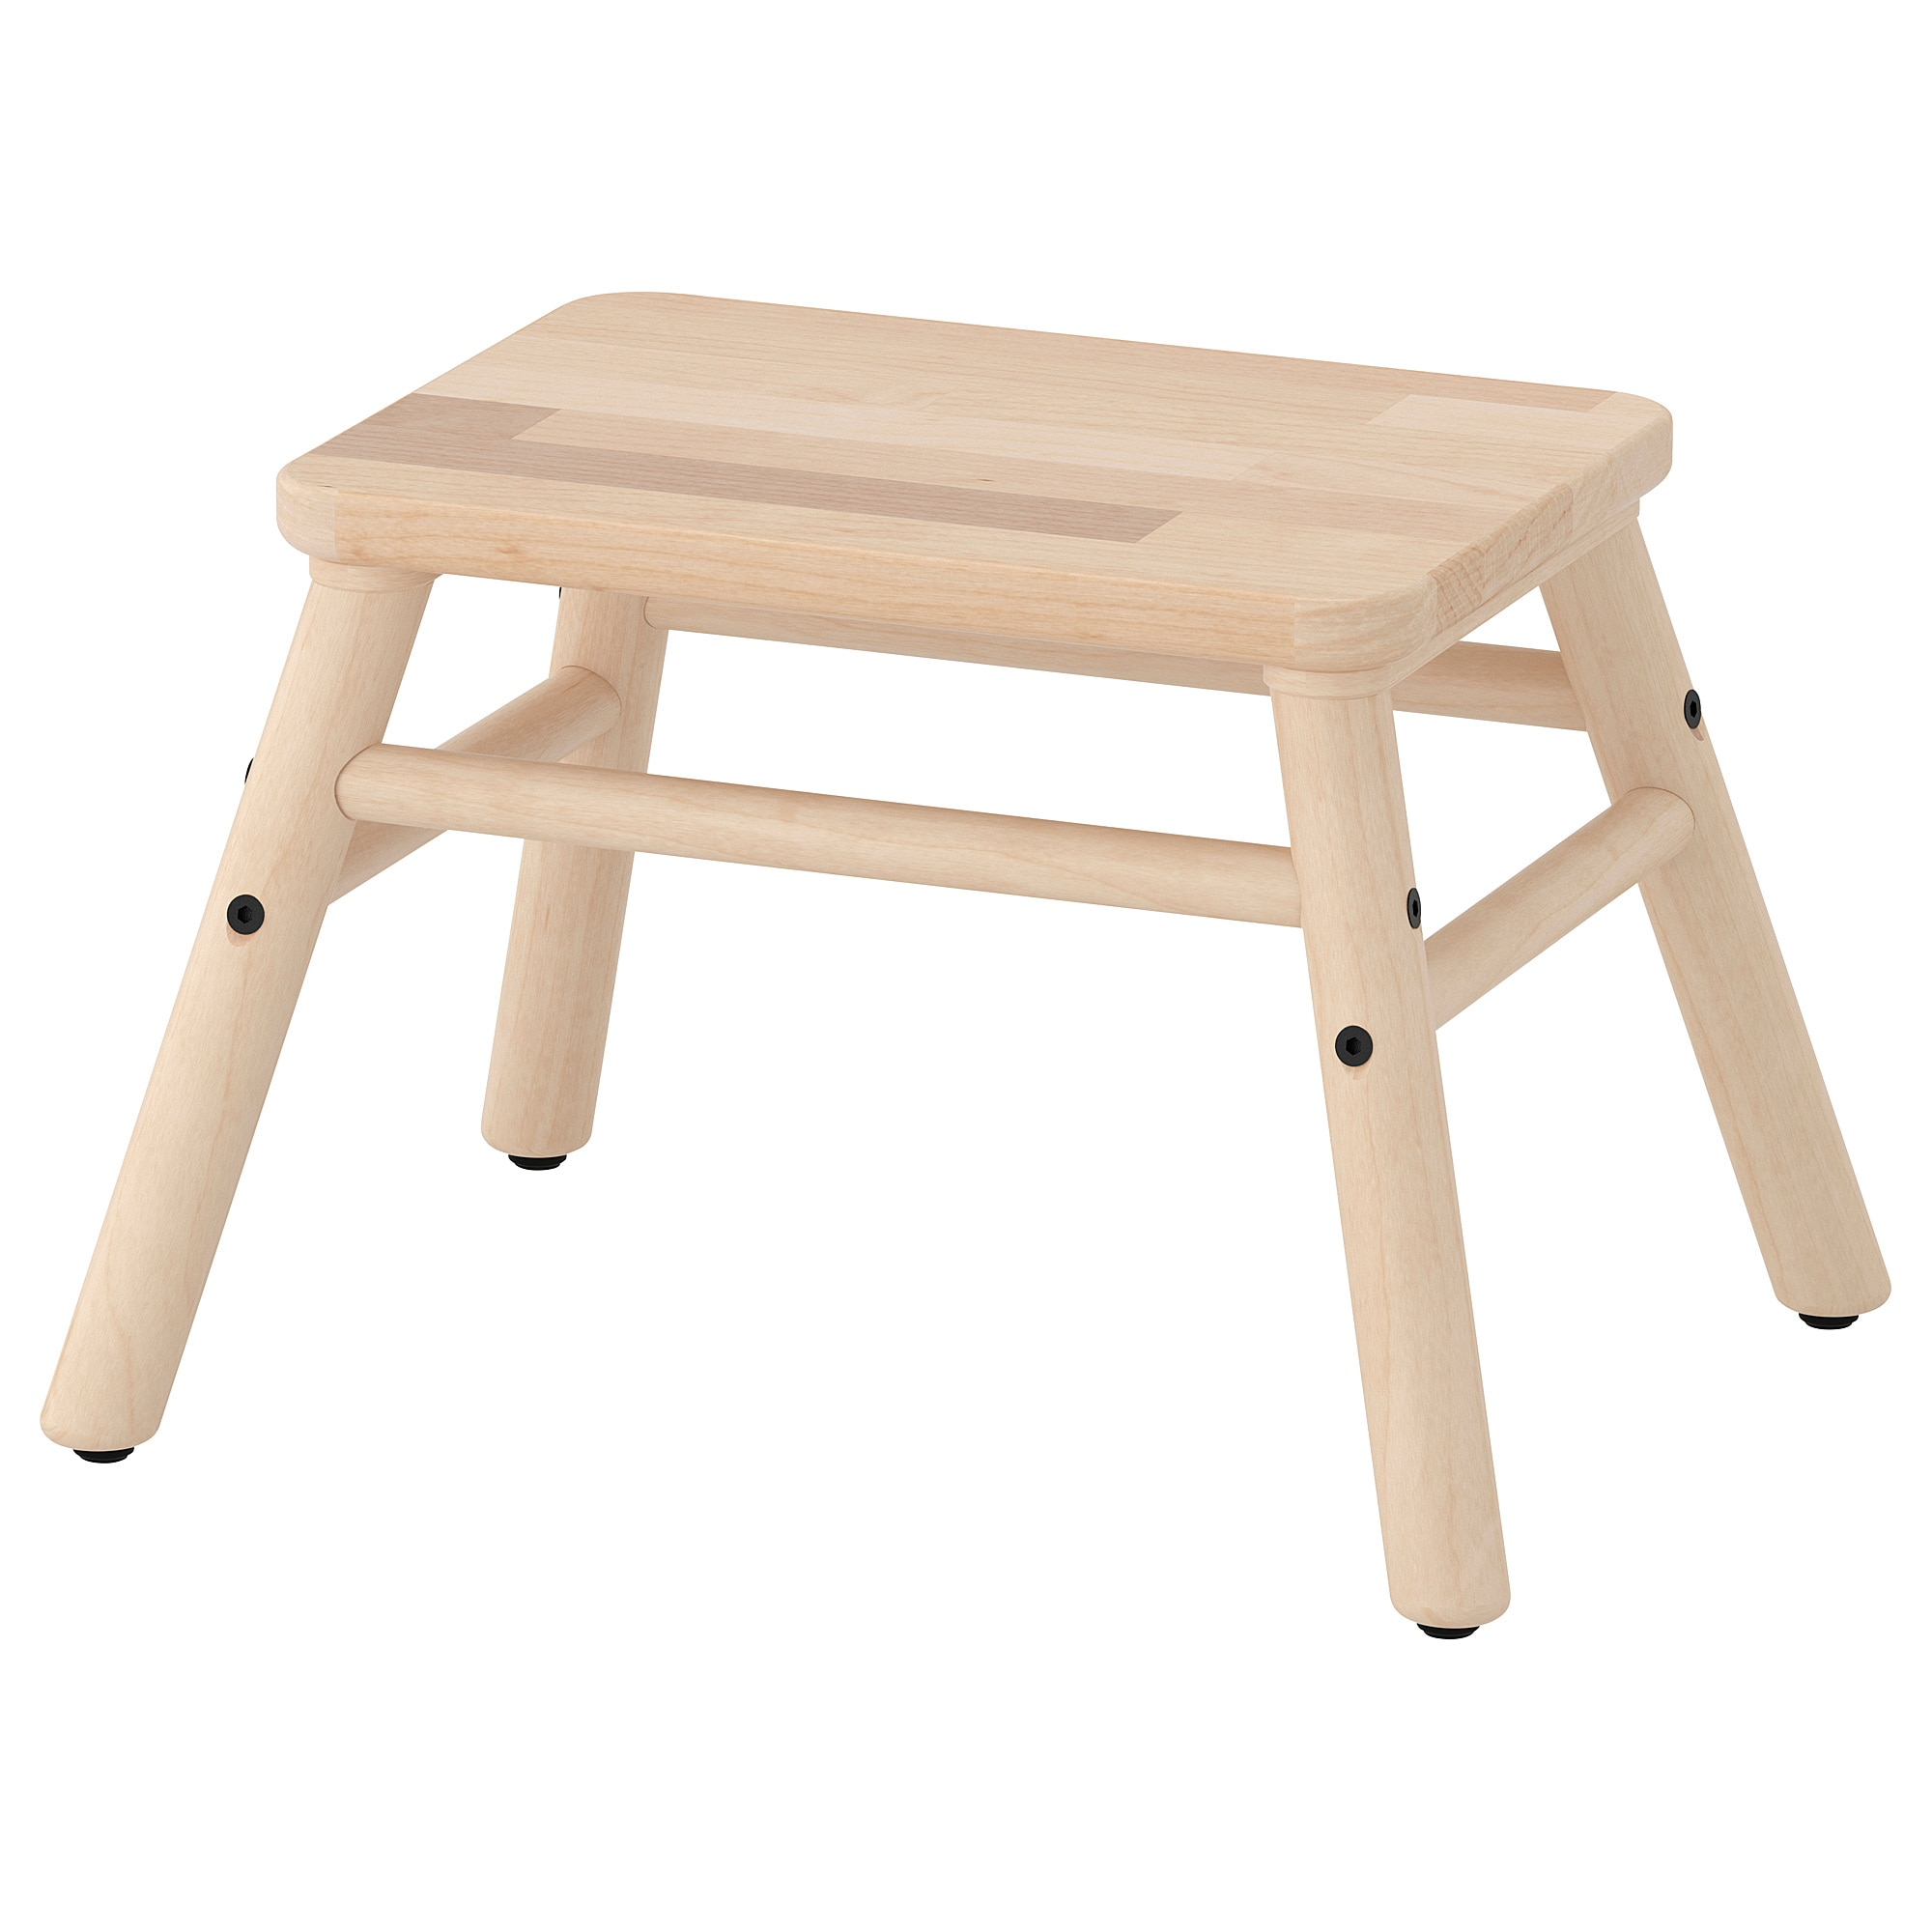 VILTO step stool  birch Width 15 3 4 Depth 12 5 Bathroom Stools Benches IKEA